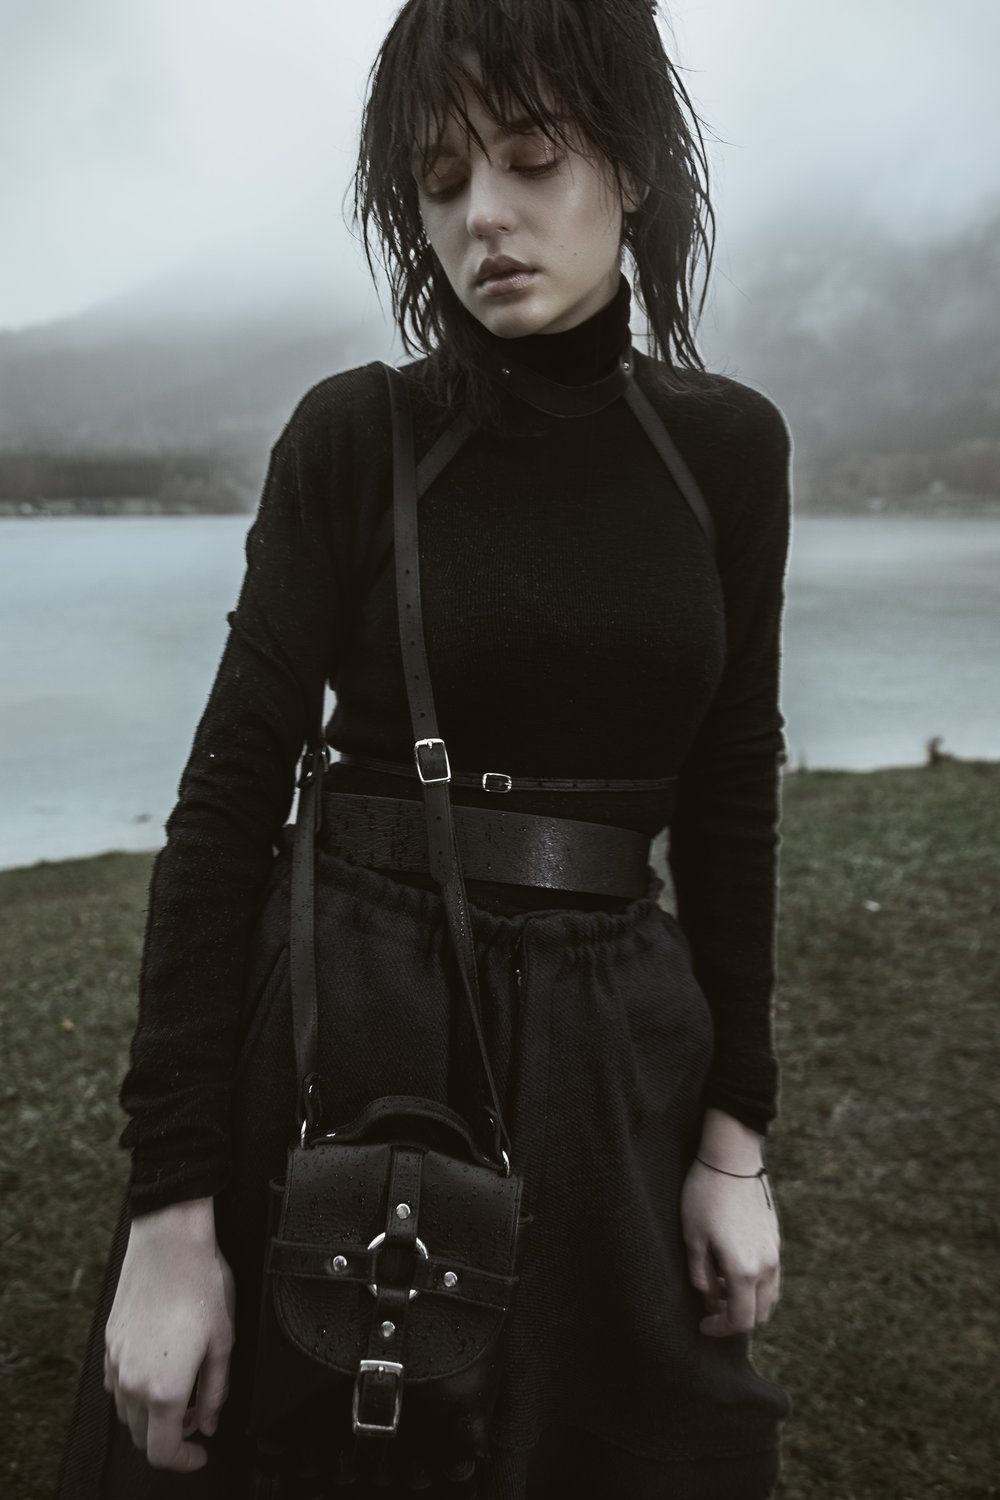 Black merinos turtle neck by Lanvin | Elastic A skirt by Moon Young Hee | Leather harness and Tassel bondage tassel handbag by Zana Bayne | Textured leather belt by Givenchy